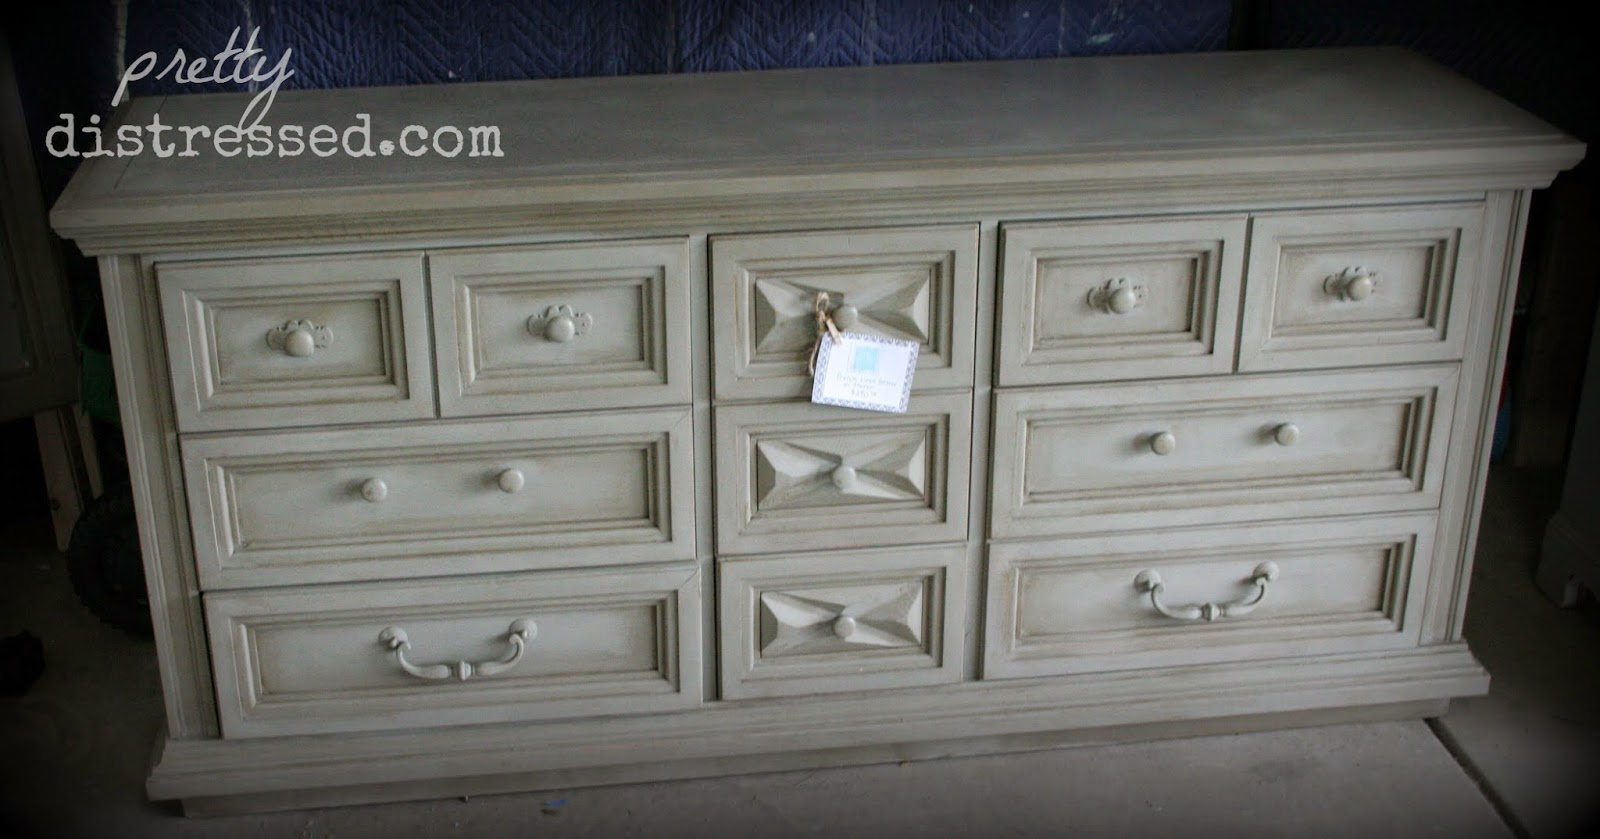 french distressed furniture. Annie Sloan French Linen, Clear Wax, Dark Wax Distressed Furniture